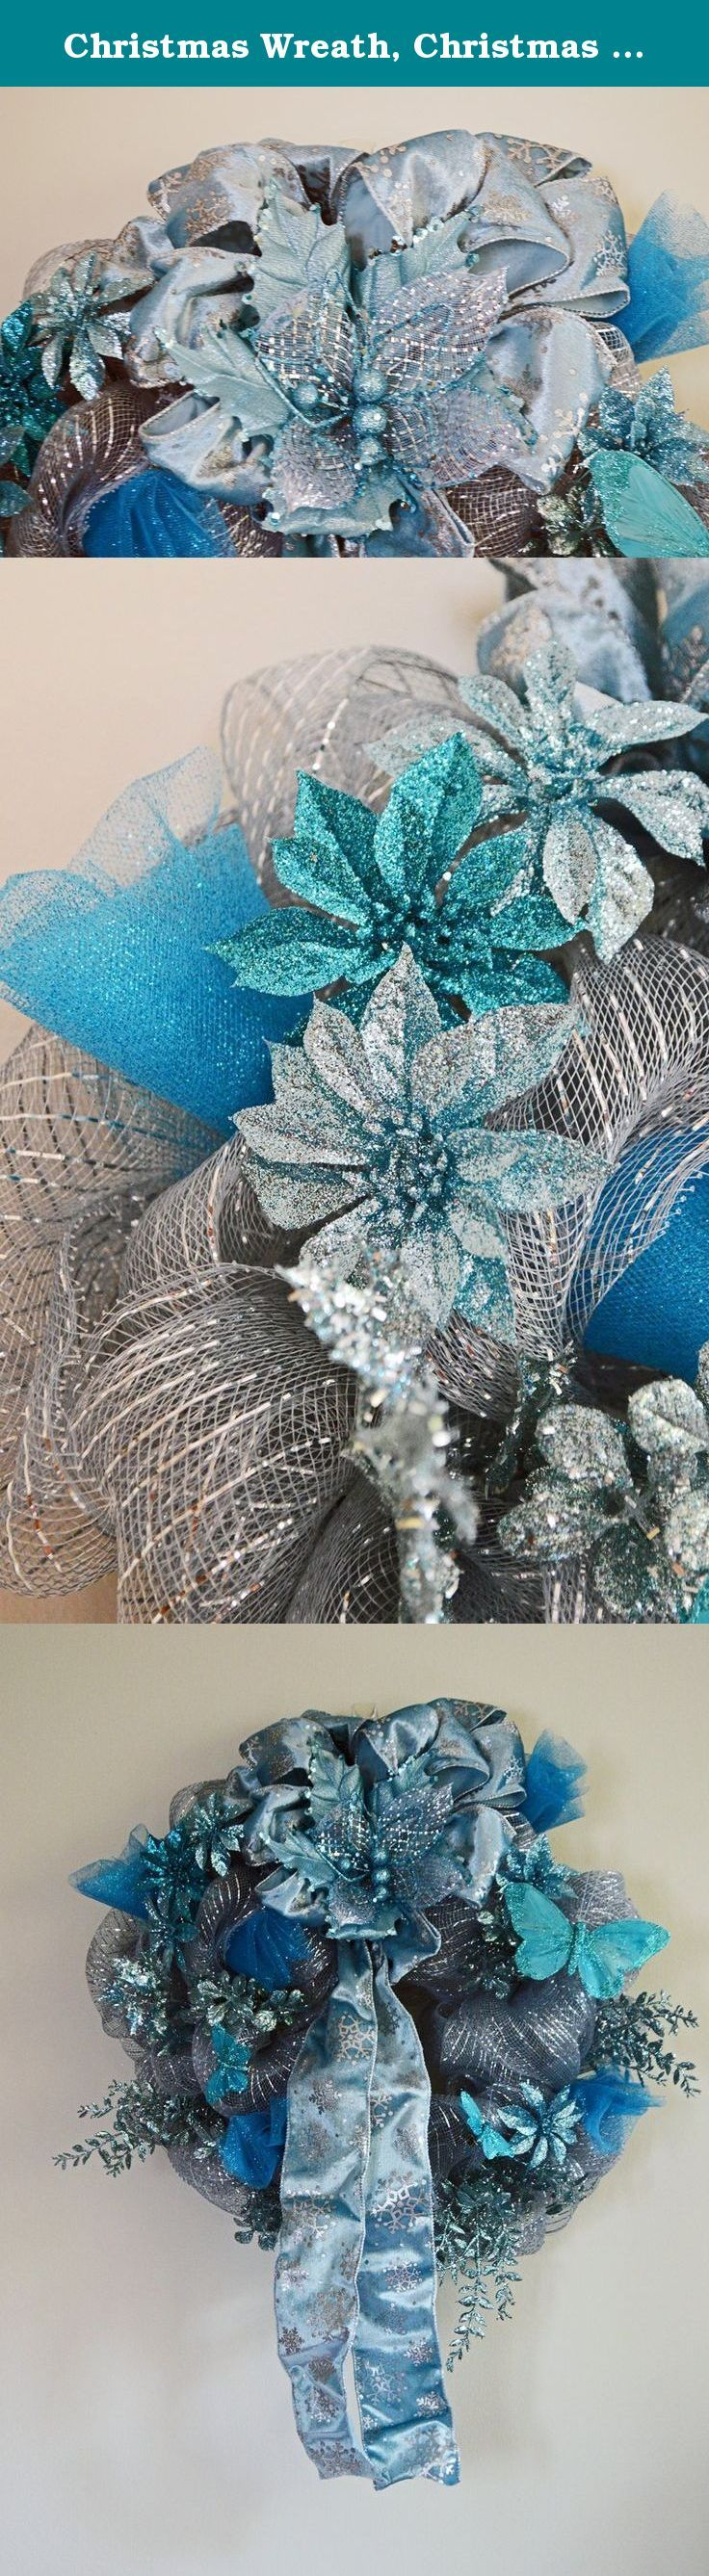 """Christmas Wreath, Christmas Deco Mesh Wreath, Door Wreath, Holiday Wreath, Teal Wreath, Winter Magic, Ready to Ship!. Reminiscent of the old Victorian days this wreath has lots of aqua colored items on it. -Deco mesh base -Silk Floral picks and butterflies -Blue ribbon -Unique, balanced design -Item measures 18"""" X 18"""" X 7"""" -Use shipping box for storage or a tote This uniquely colored wreath will be the only thing your holiday guests will talk about when they visit. The colors are…"""